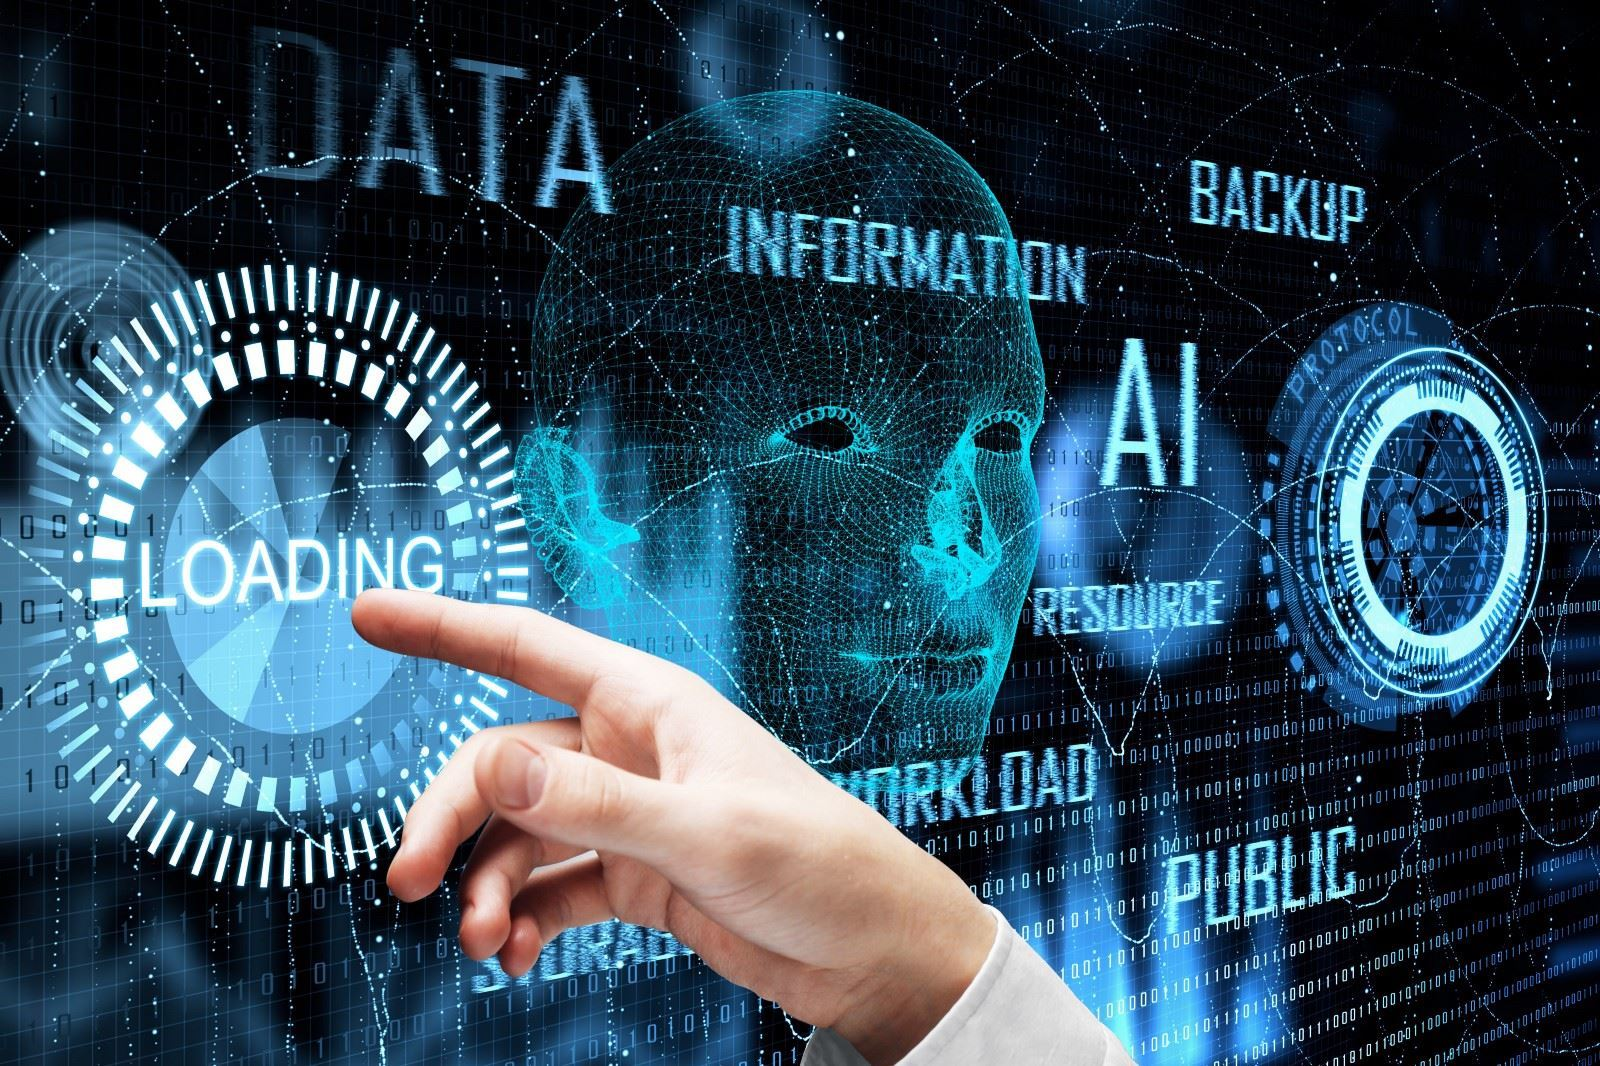 HOW DATA ENTRY TOOK AN IMPORTANT ROLE IN ARTIFICIAL INTELLIGENCE AND MACHINE LEARNING